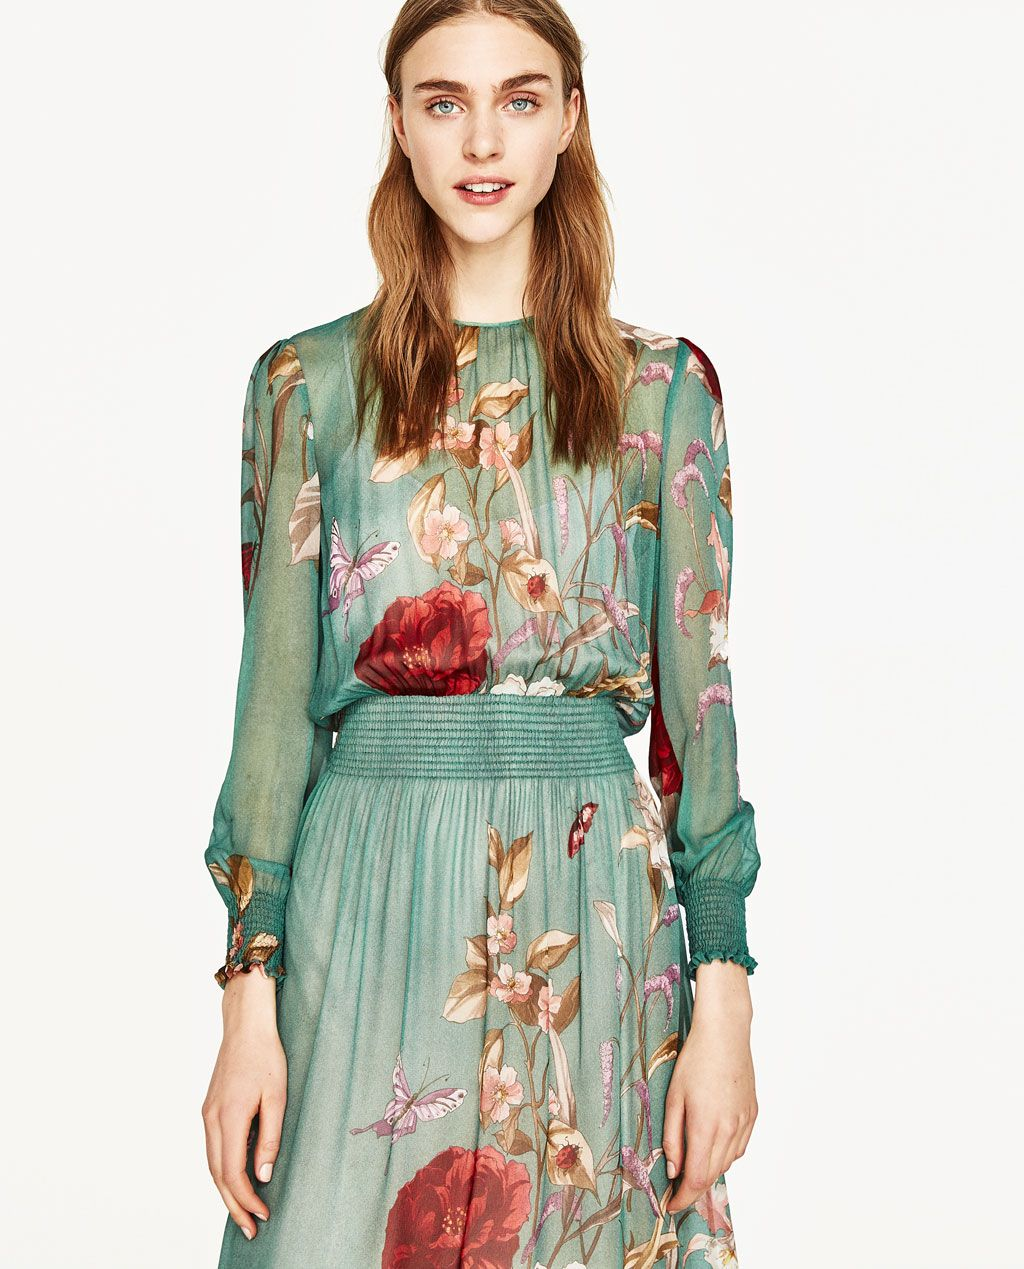 89374bf1 FLORAL PRINT FLOWING DRESS-DRESSES-WOMAN | ZARA United States ...